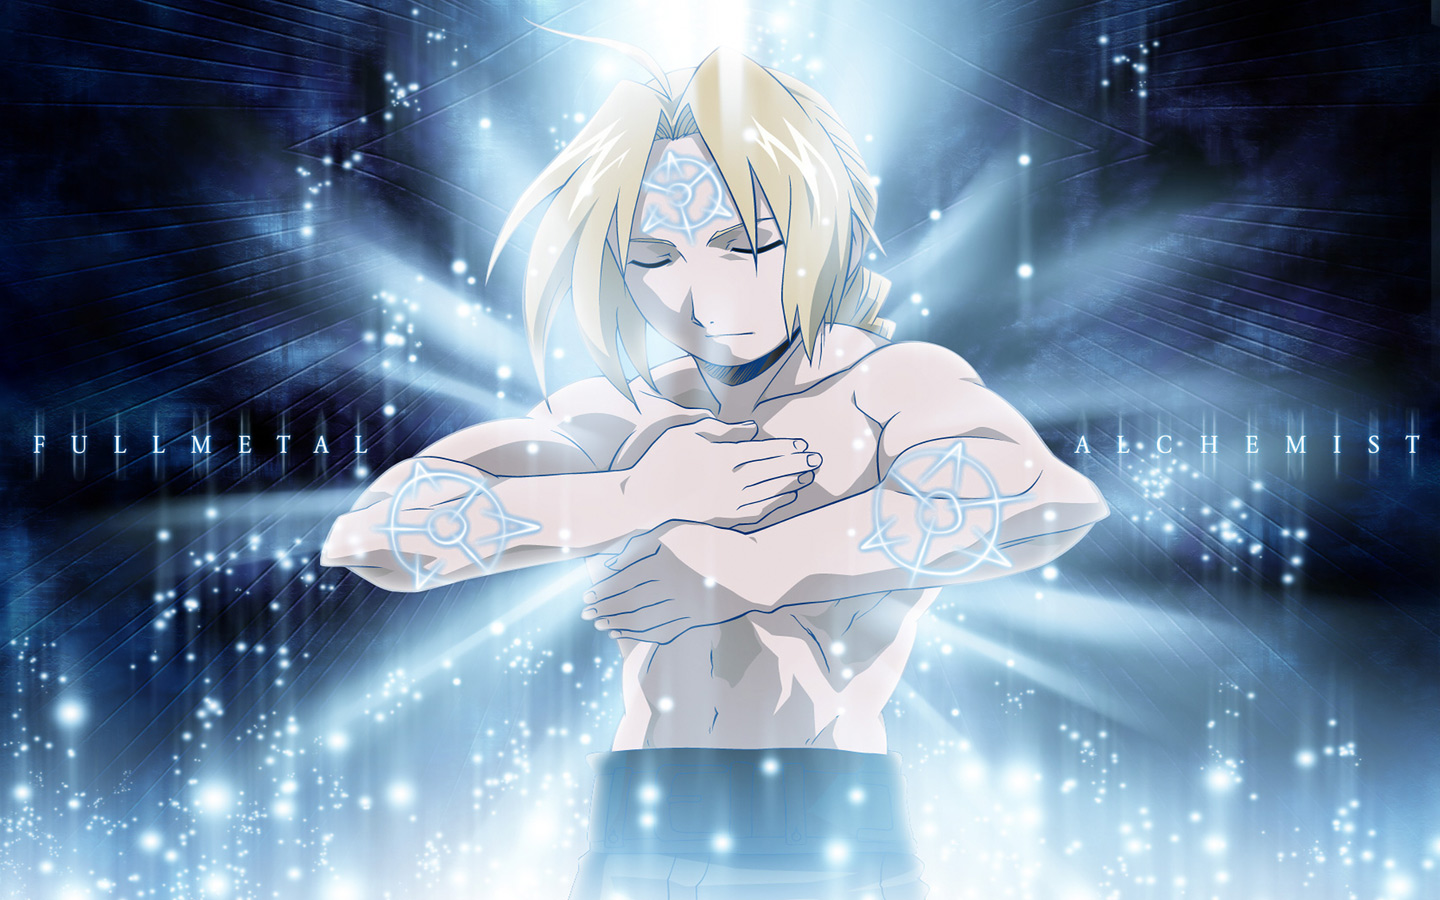 Full Metal Alchemist HD & Widescreen Wallpaper 0.102487650036198